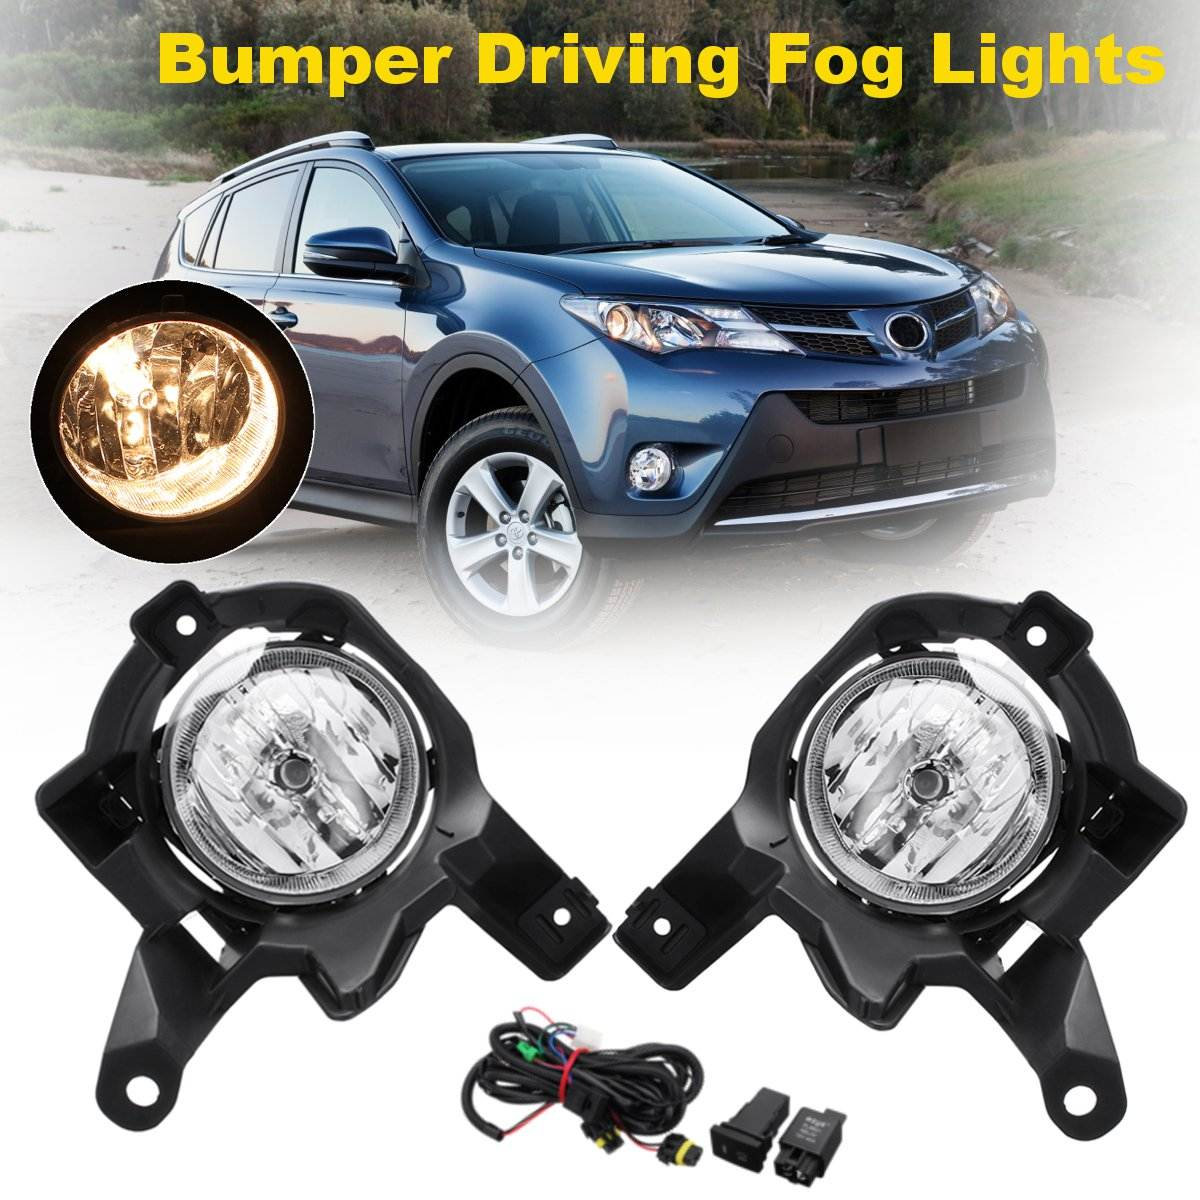 Front Left Right Pair DC 12V 55W H11 Amber Clear Bumper Driving Fog Lights w/ Wiring Harness For Toyota RAV4 2013 2014 2015 for opel astra h gtc 2005 15 h11 wiring harness sockets wire connector switch 2 fog lights drl front bumper 5d lens led lamp